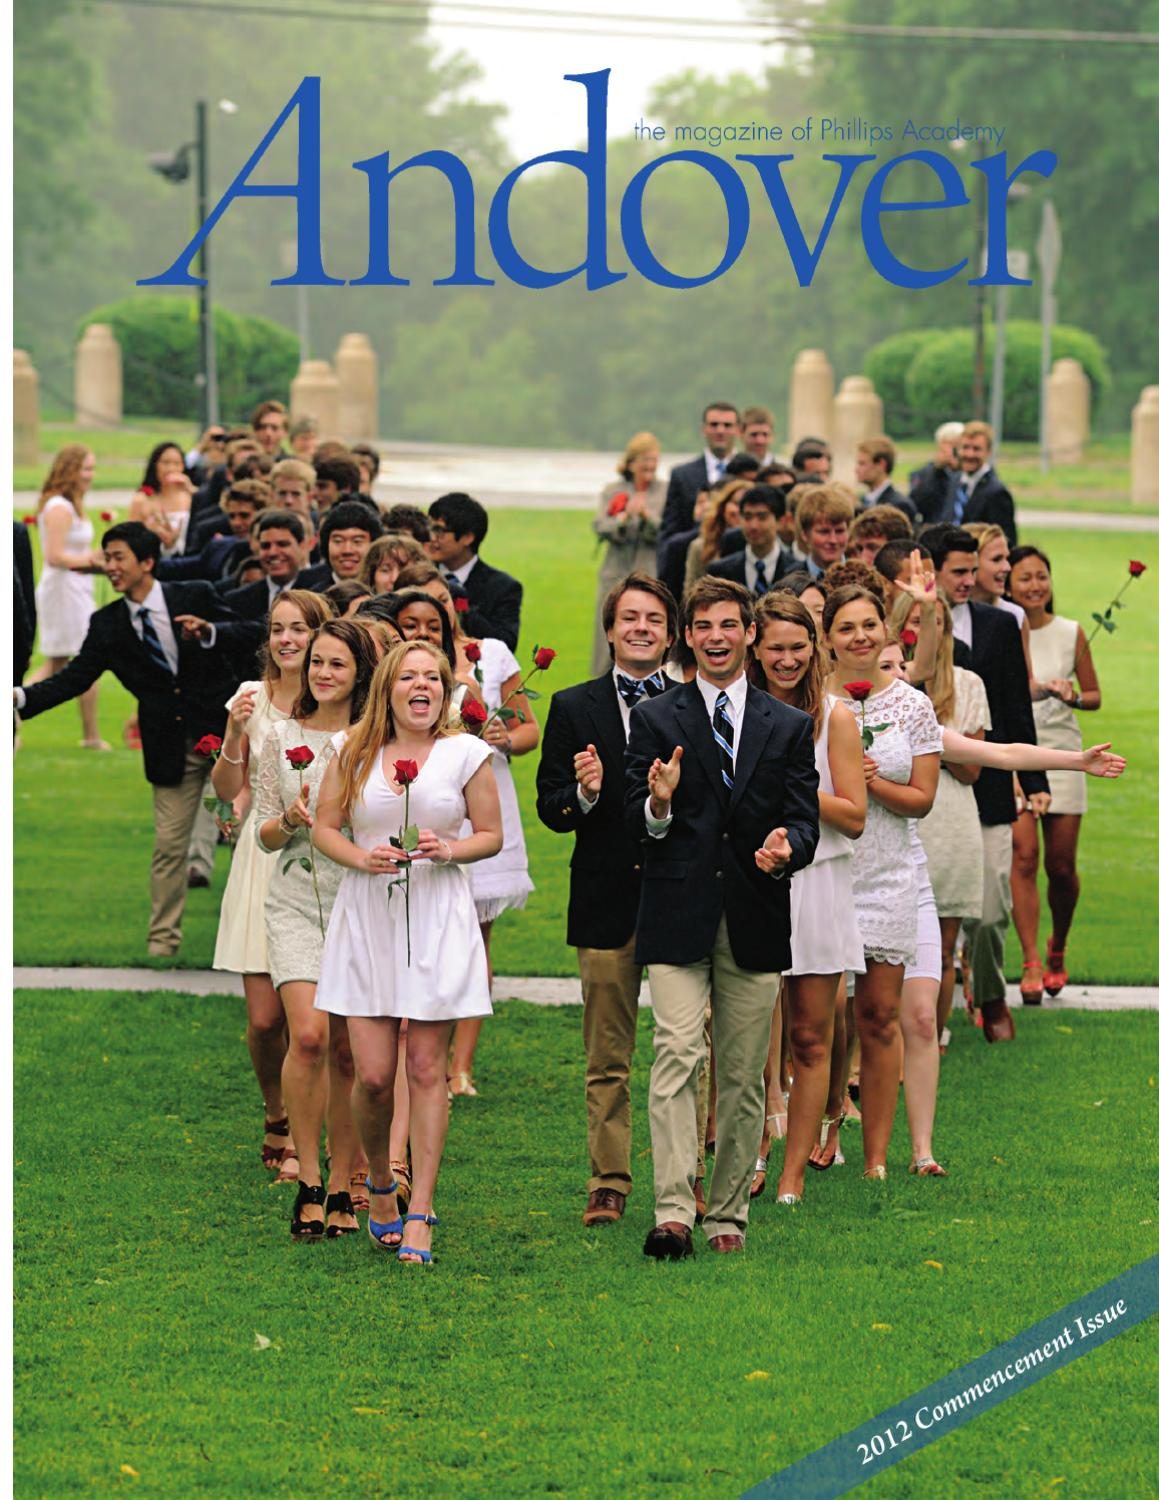 Andover The Magazine Commencement 2012 By Phillips Academy Issuu